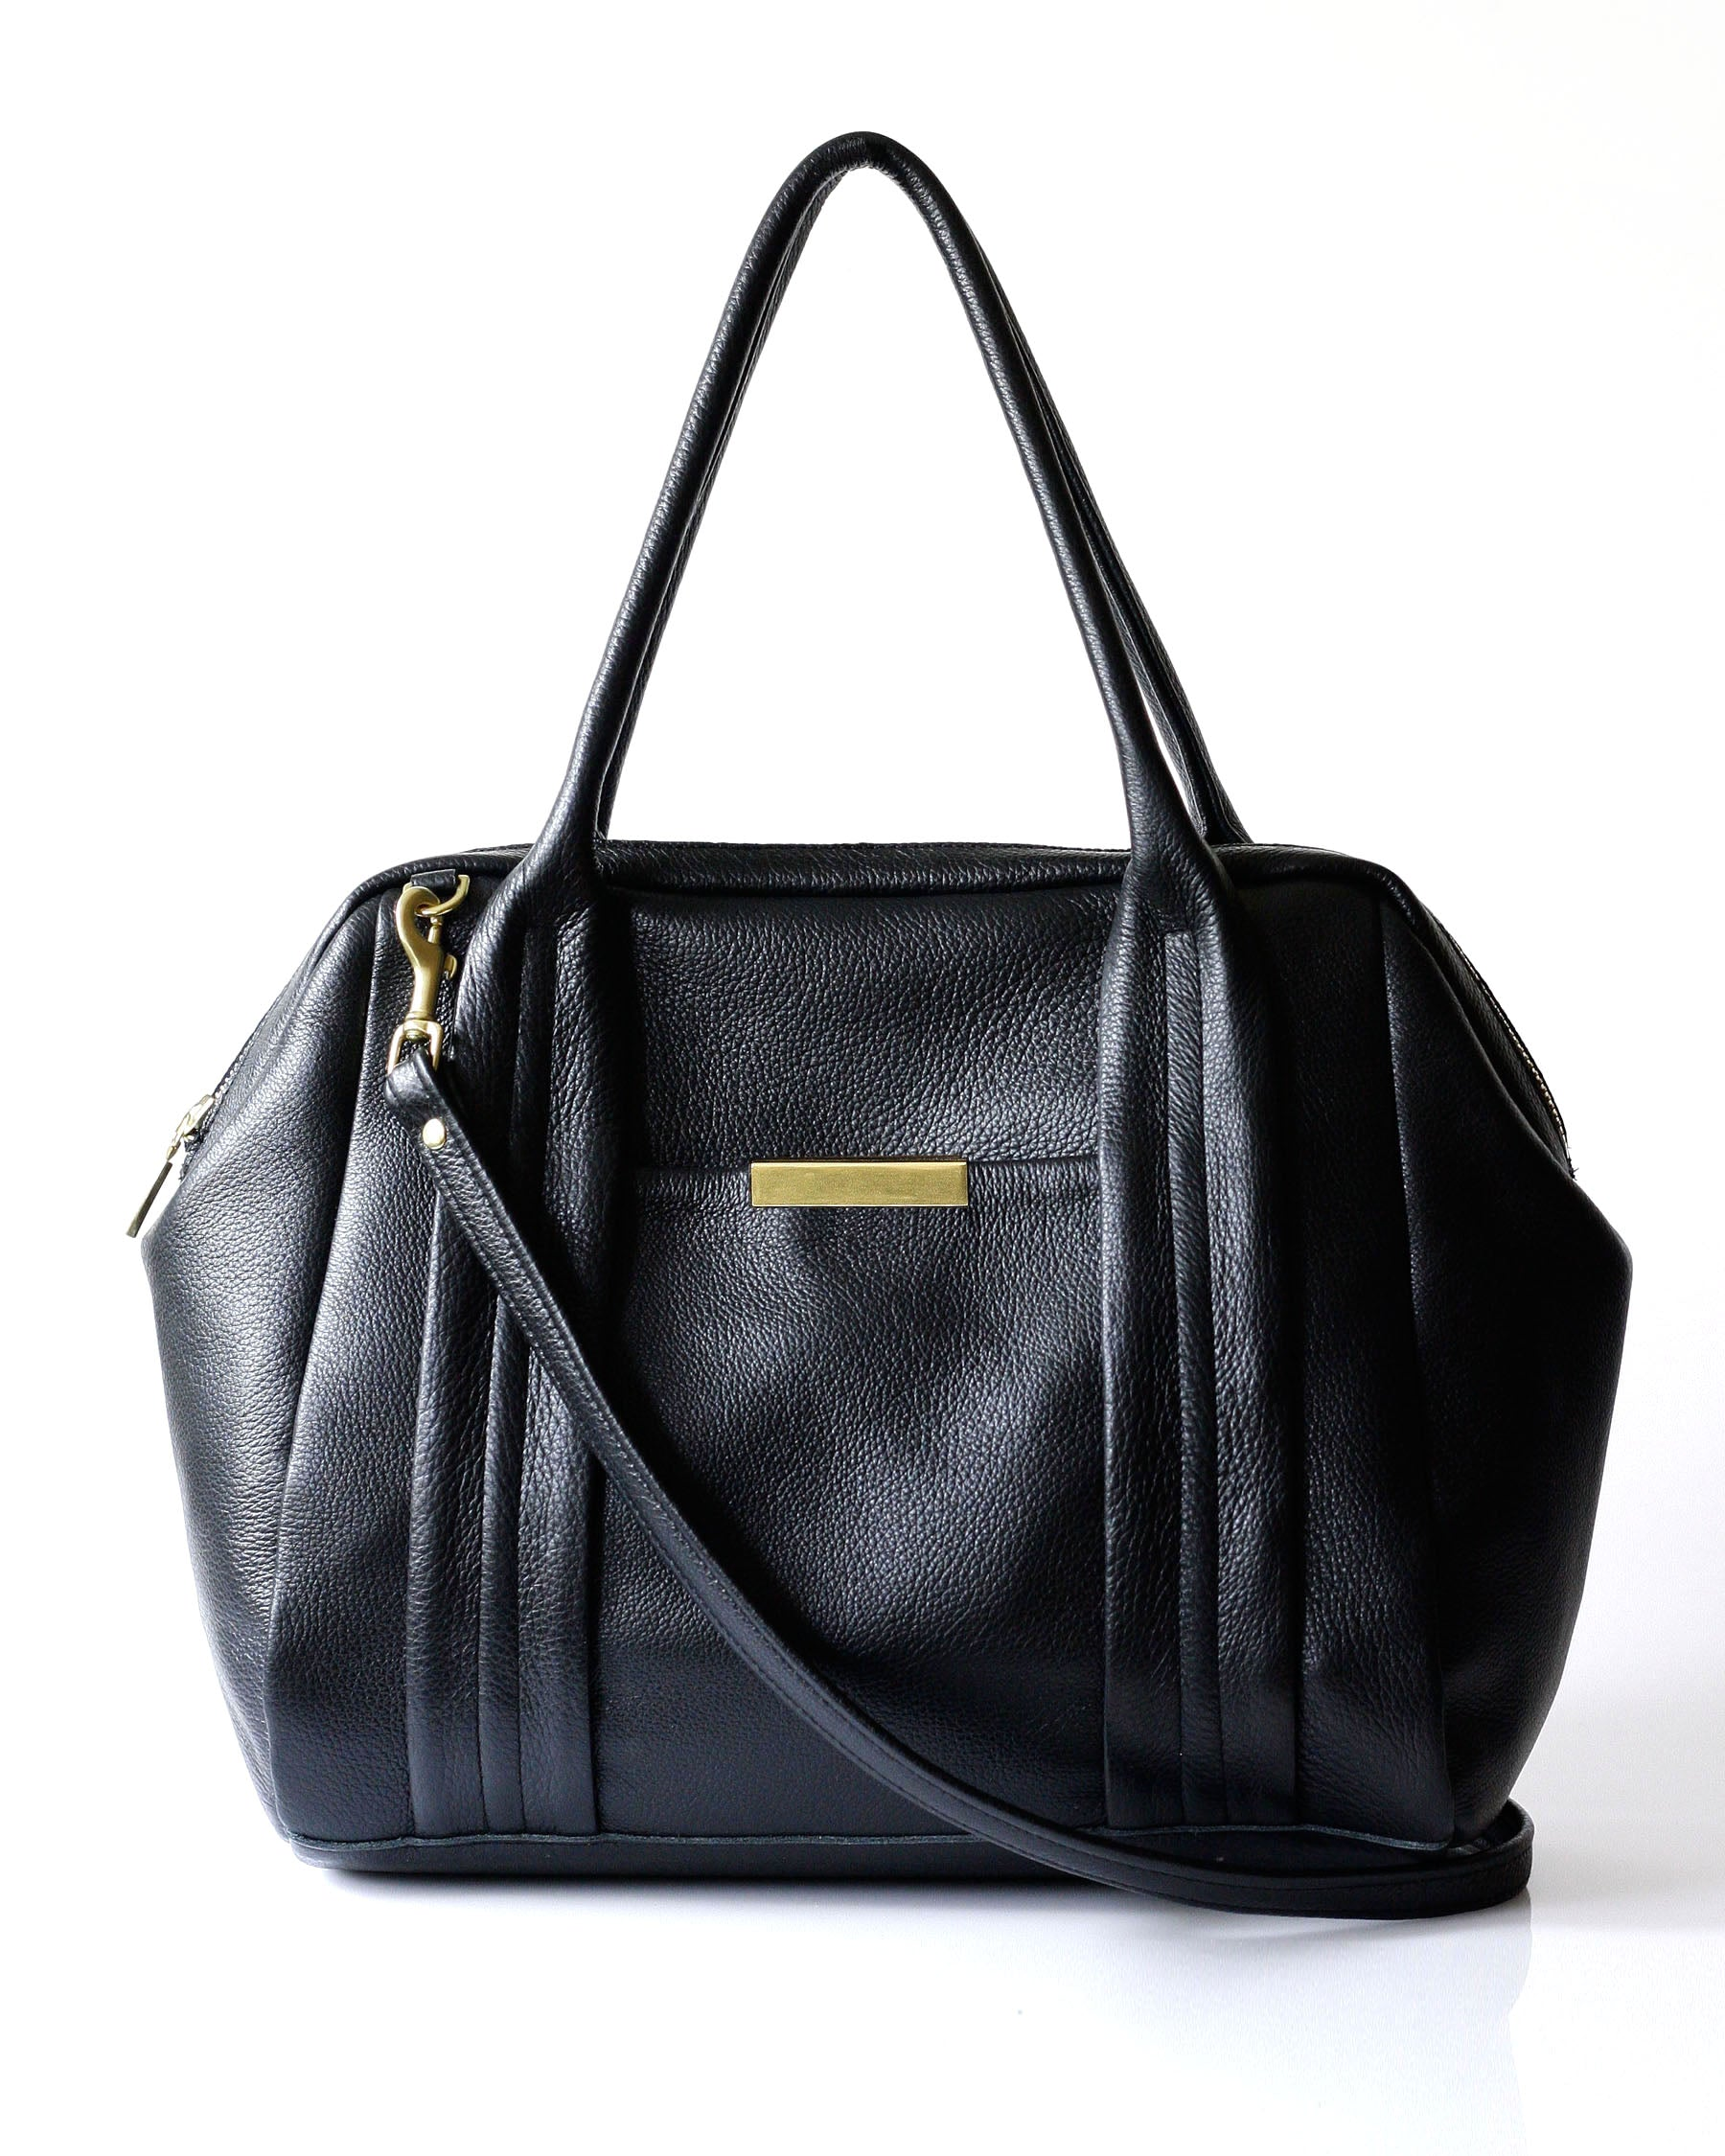 Liria Duffle - Opelle bag Permanent Collection - Opelle leather handbag handcrafted leather bag toronto Canada